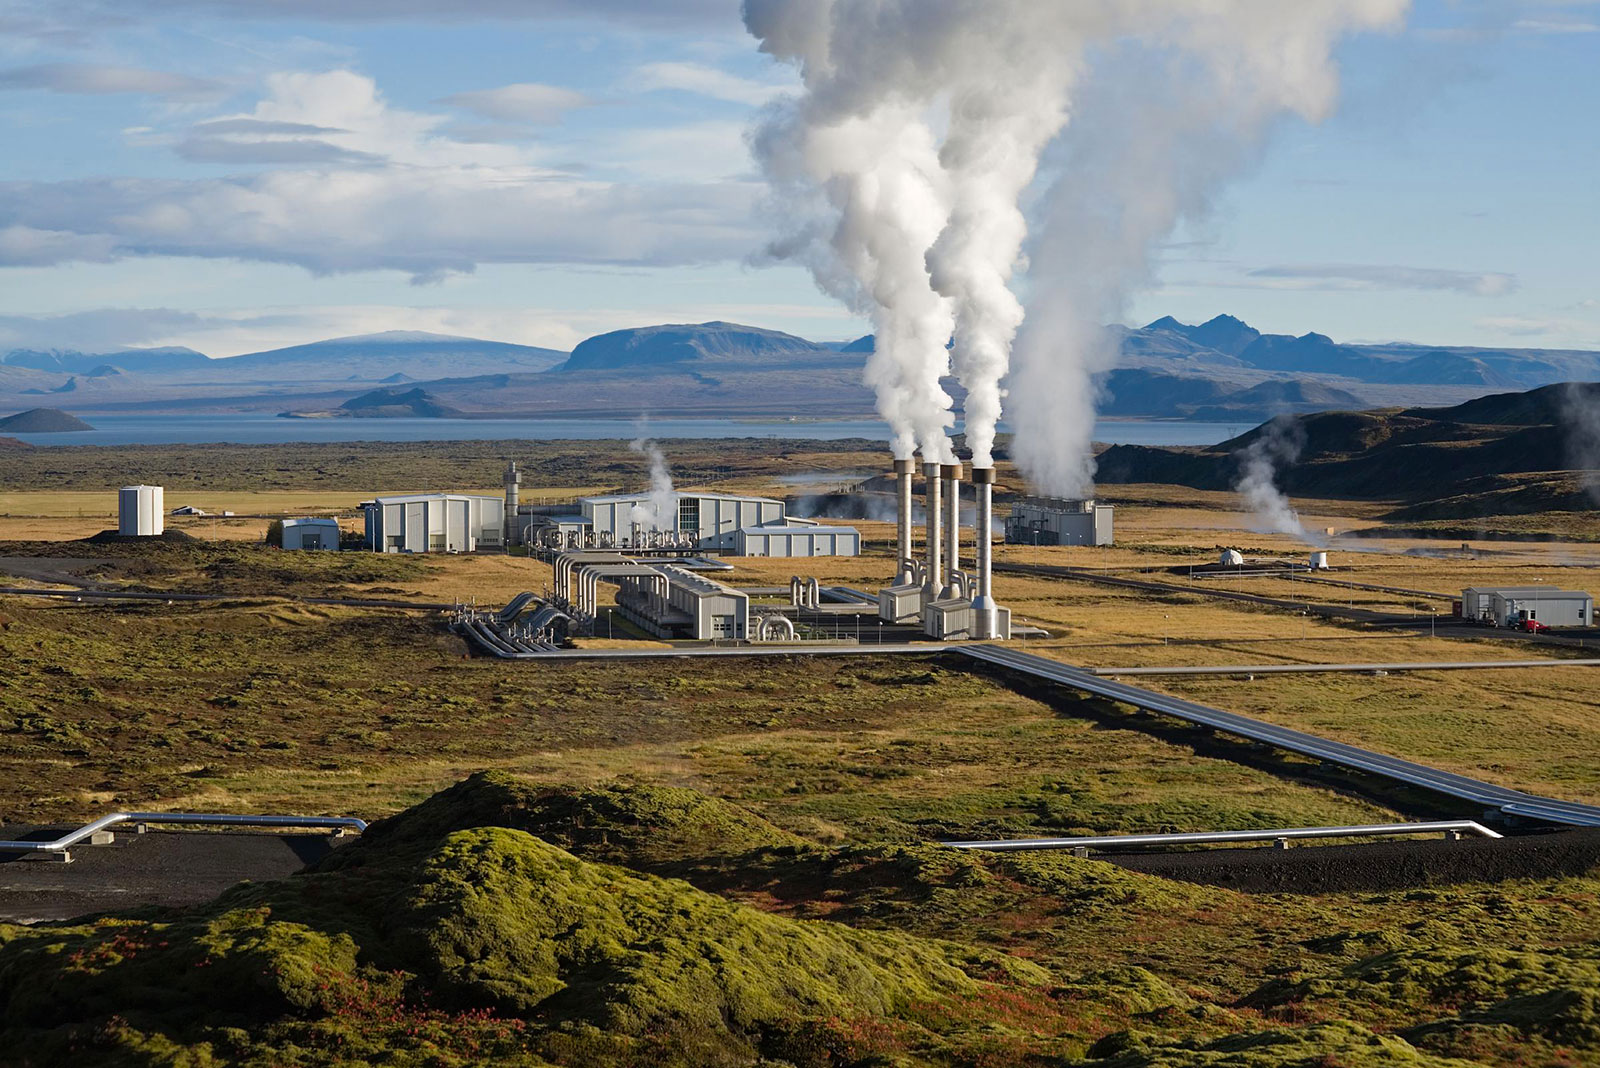 Global Geothermal Energy Market to make great impact in near future by 2020-2026